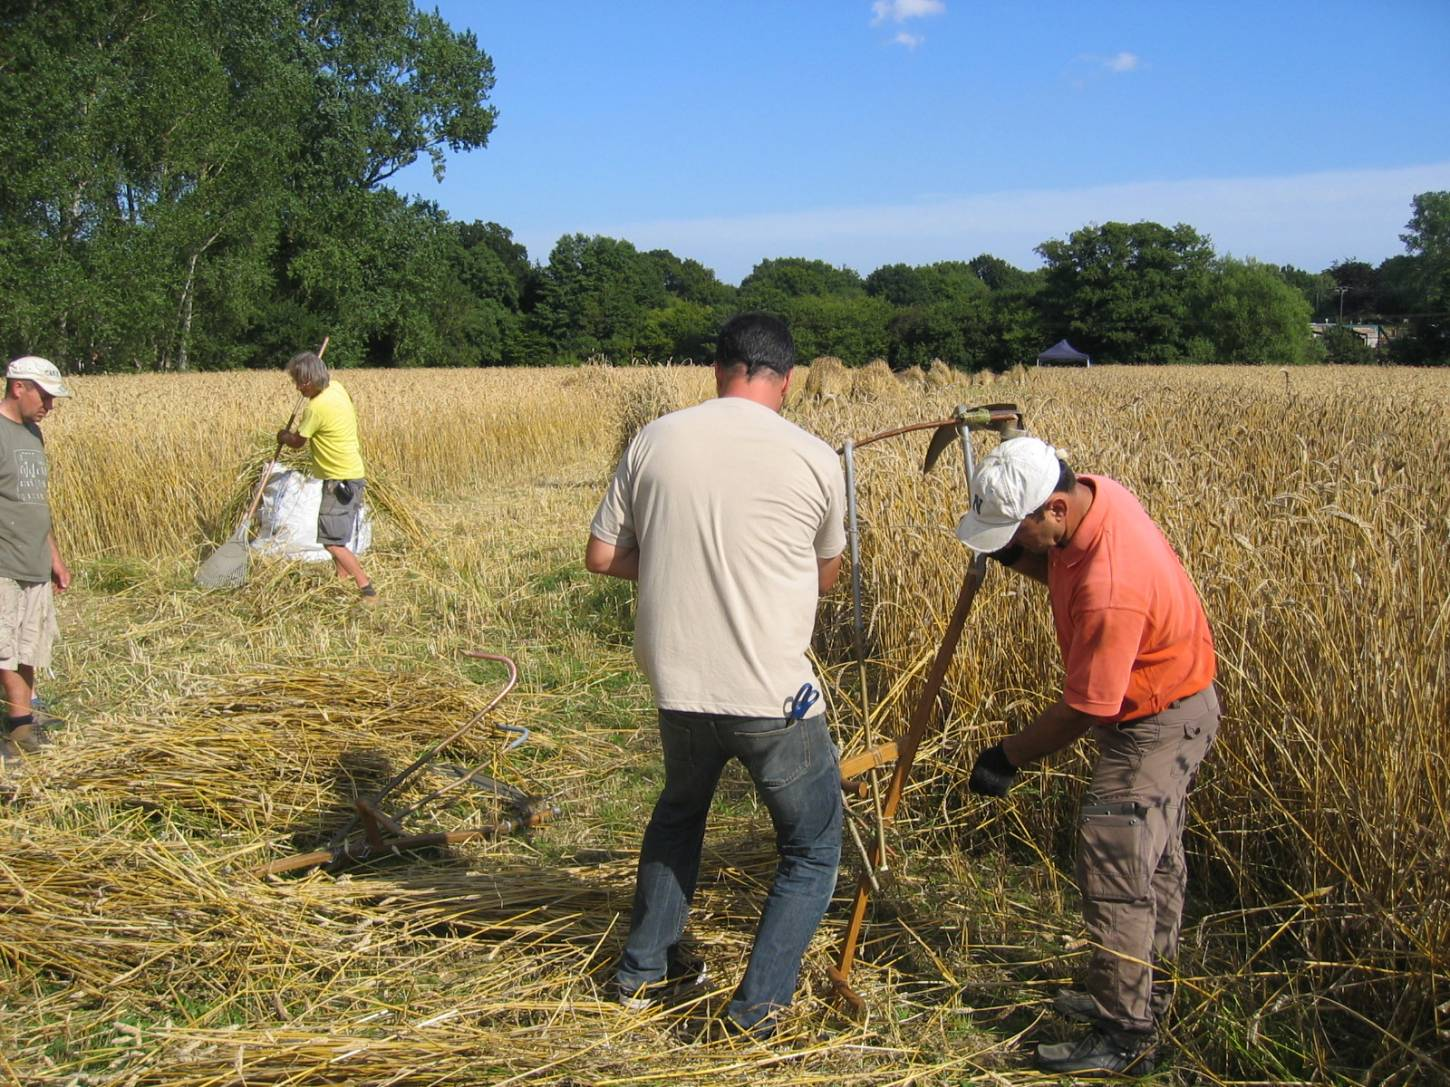 WoWo manual harvest - Steven and Petra's improvised wheat cradle being adjusted by Illinois and Stephen - 6:09pm&nbsp;8<sup>th</sup>&nbsp;Aug.&nbsp;'15